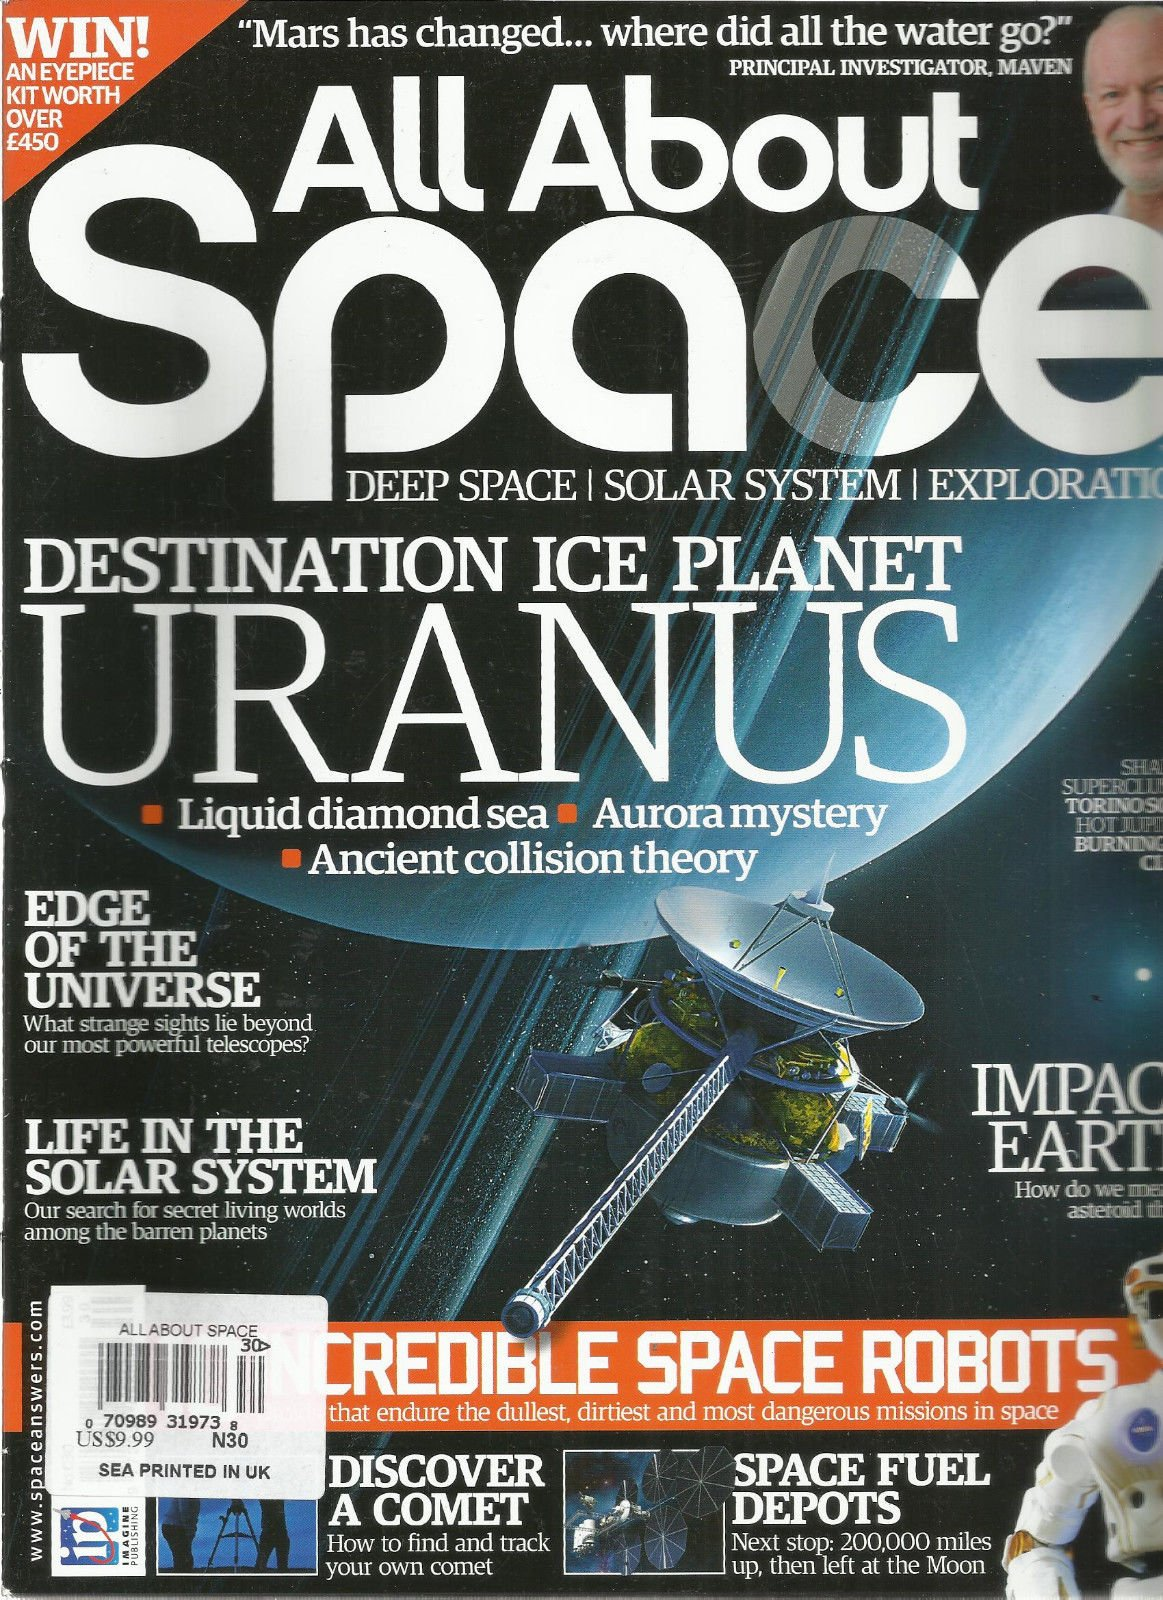 ALL ABOUT SPACE, NO.30 (DEEP SPACE SOLAR SYSTEM EXPLORATION * IMPACT EARTH)